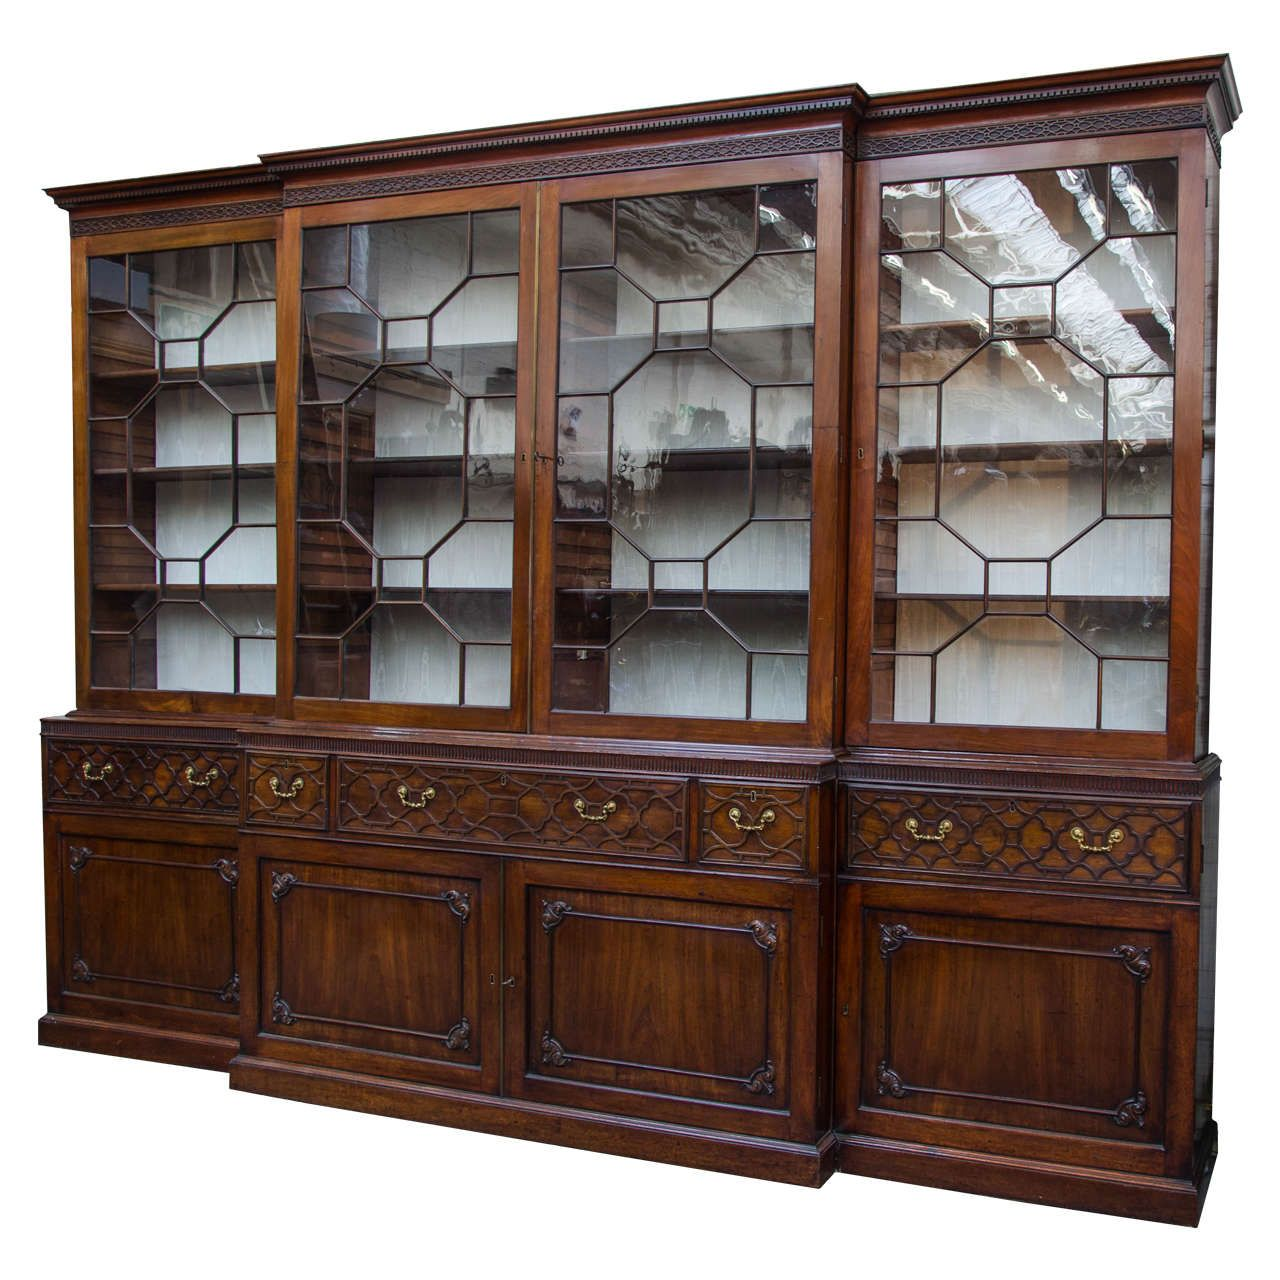 Large Mahogany Chippendale Period Breakfront Bookcase